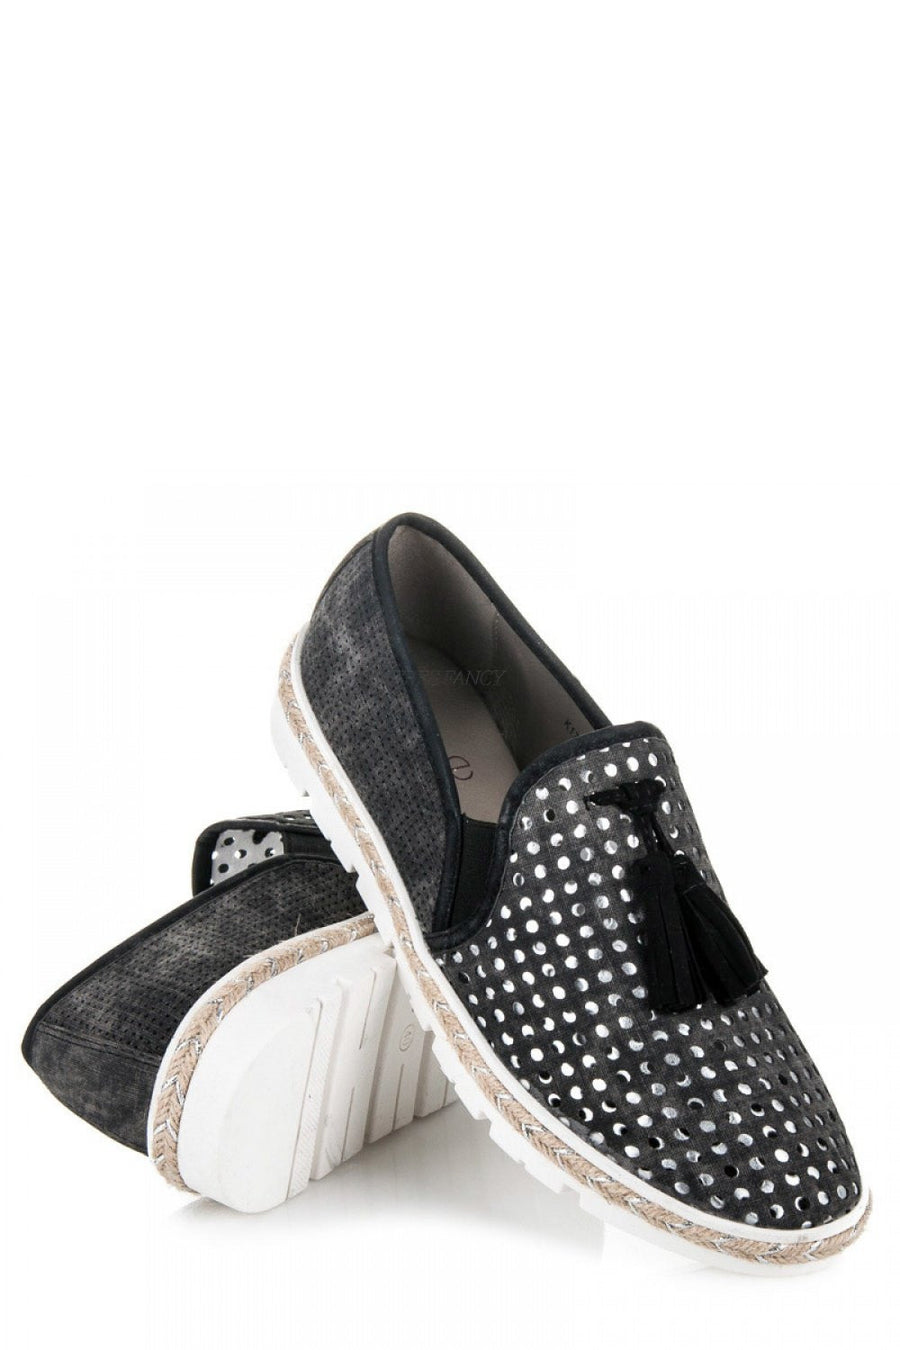 Espadrille 78526 Zoki-Women`s Athletic Shoes, Trainers, Sneakers-Zoki-Très Fancy